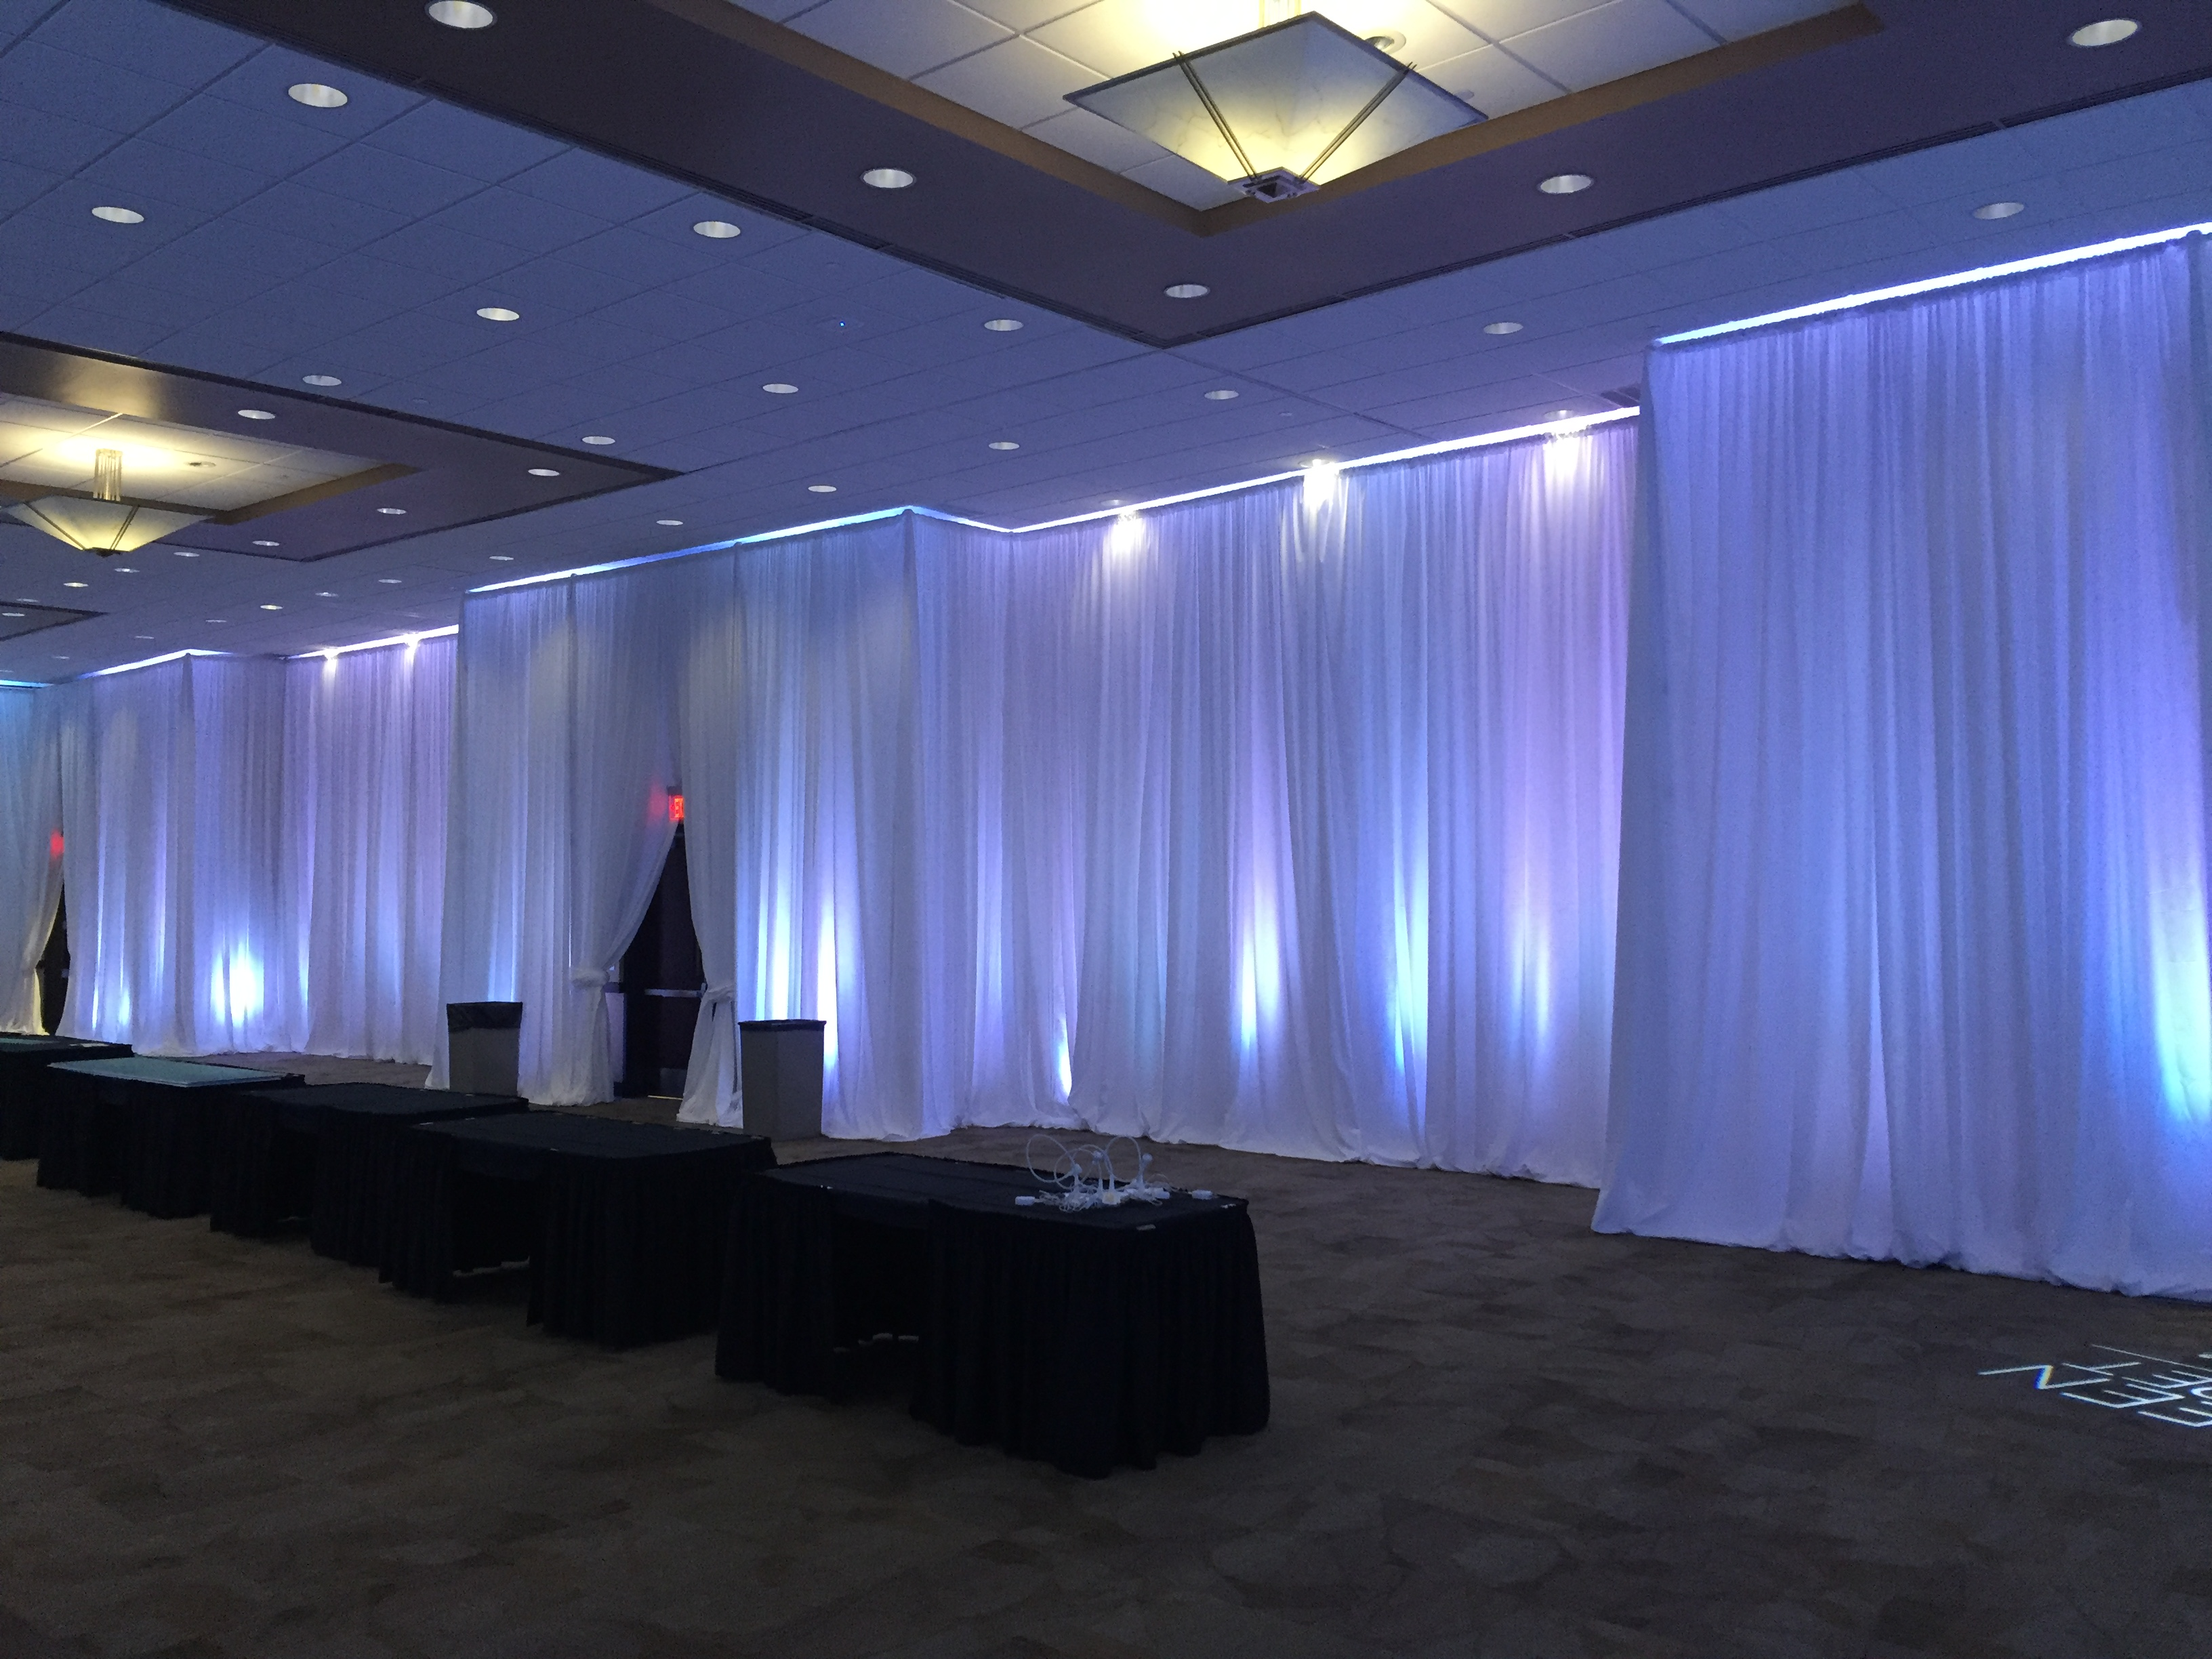 rental lighted for pittsburgh drapes custom drape rentals services ceiling events text pipe how swags and hang to no